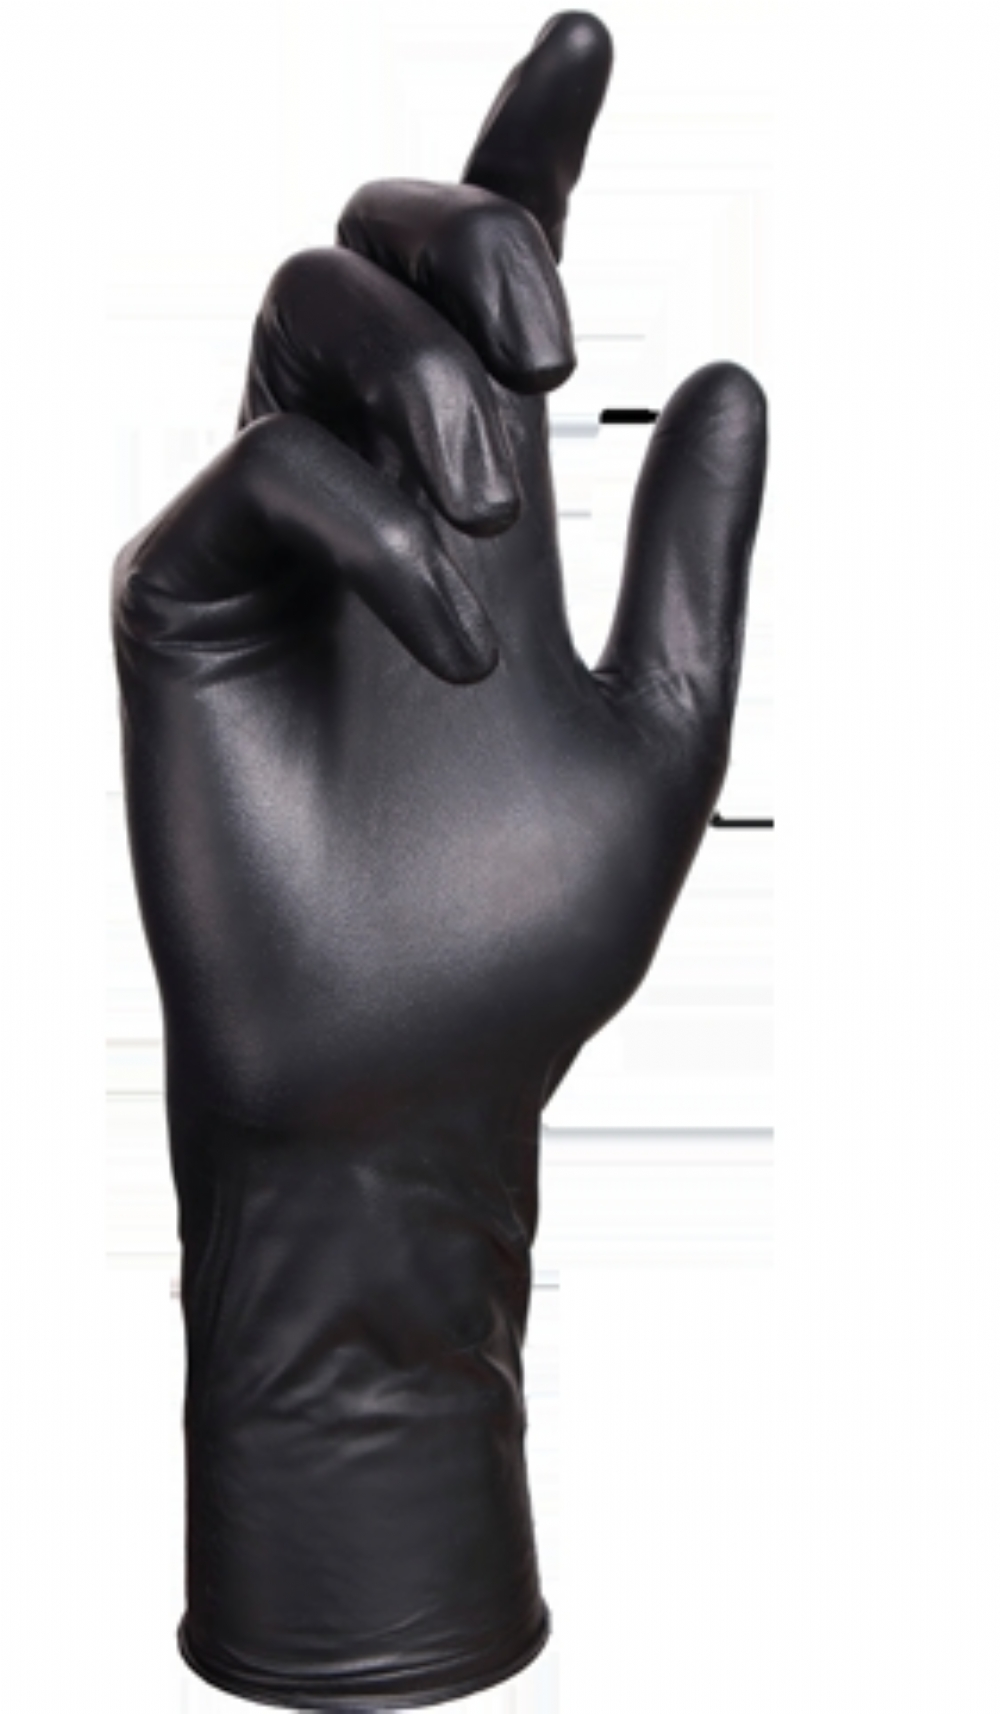 Select Black Latex Powder Free Extended Cuff Gloves